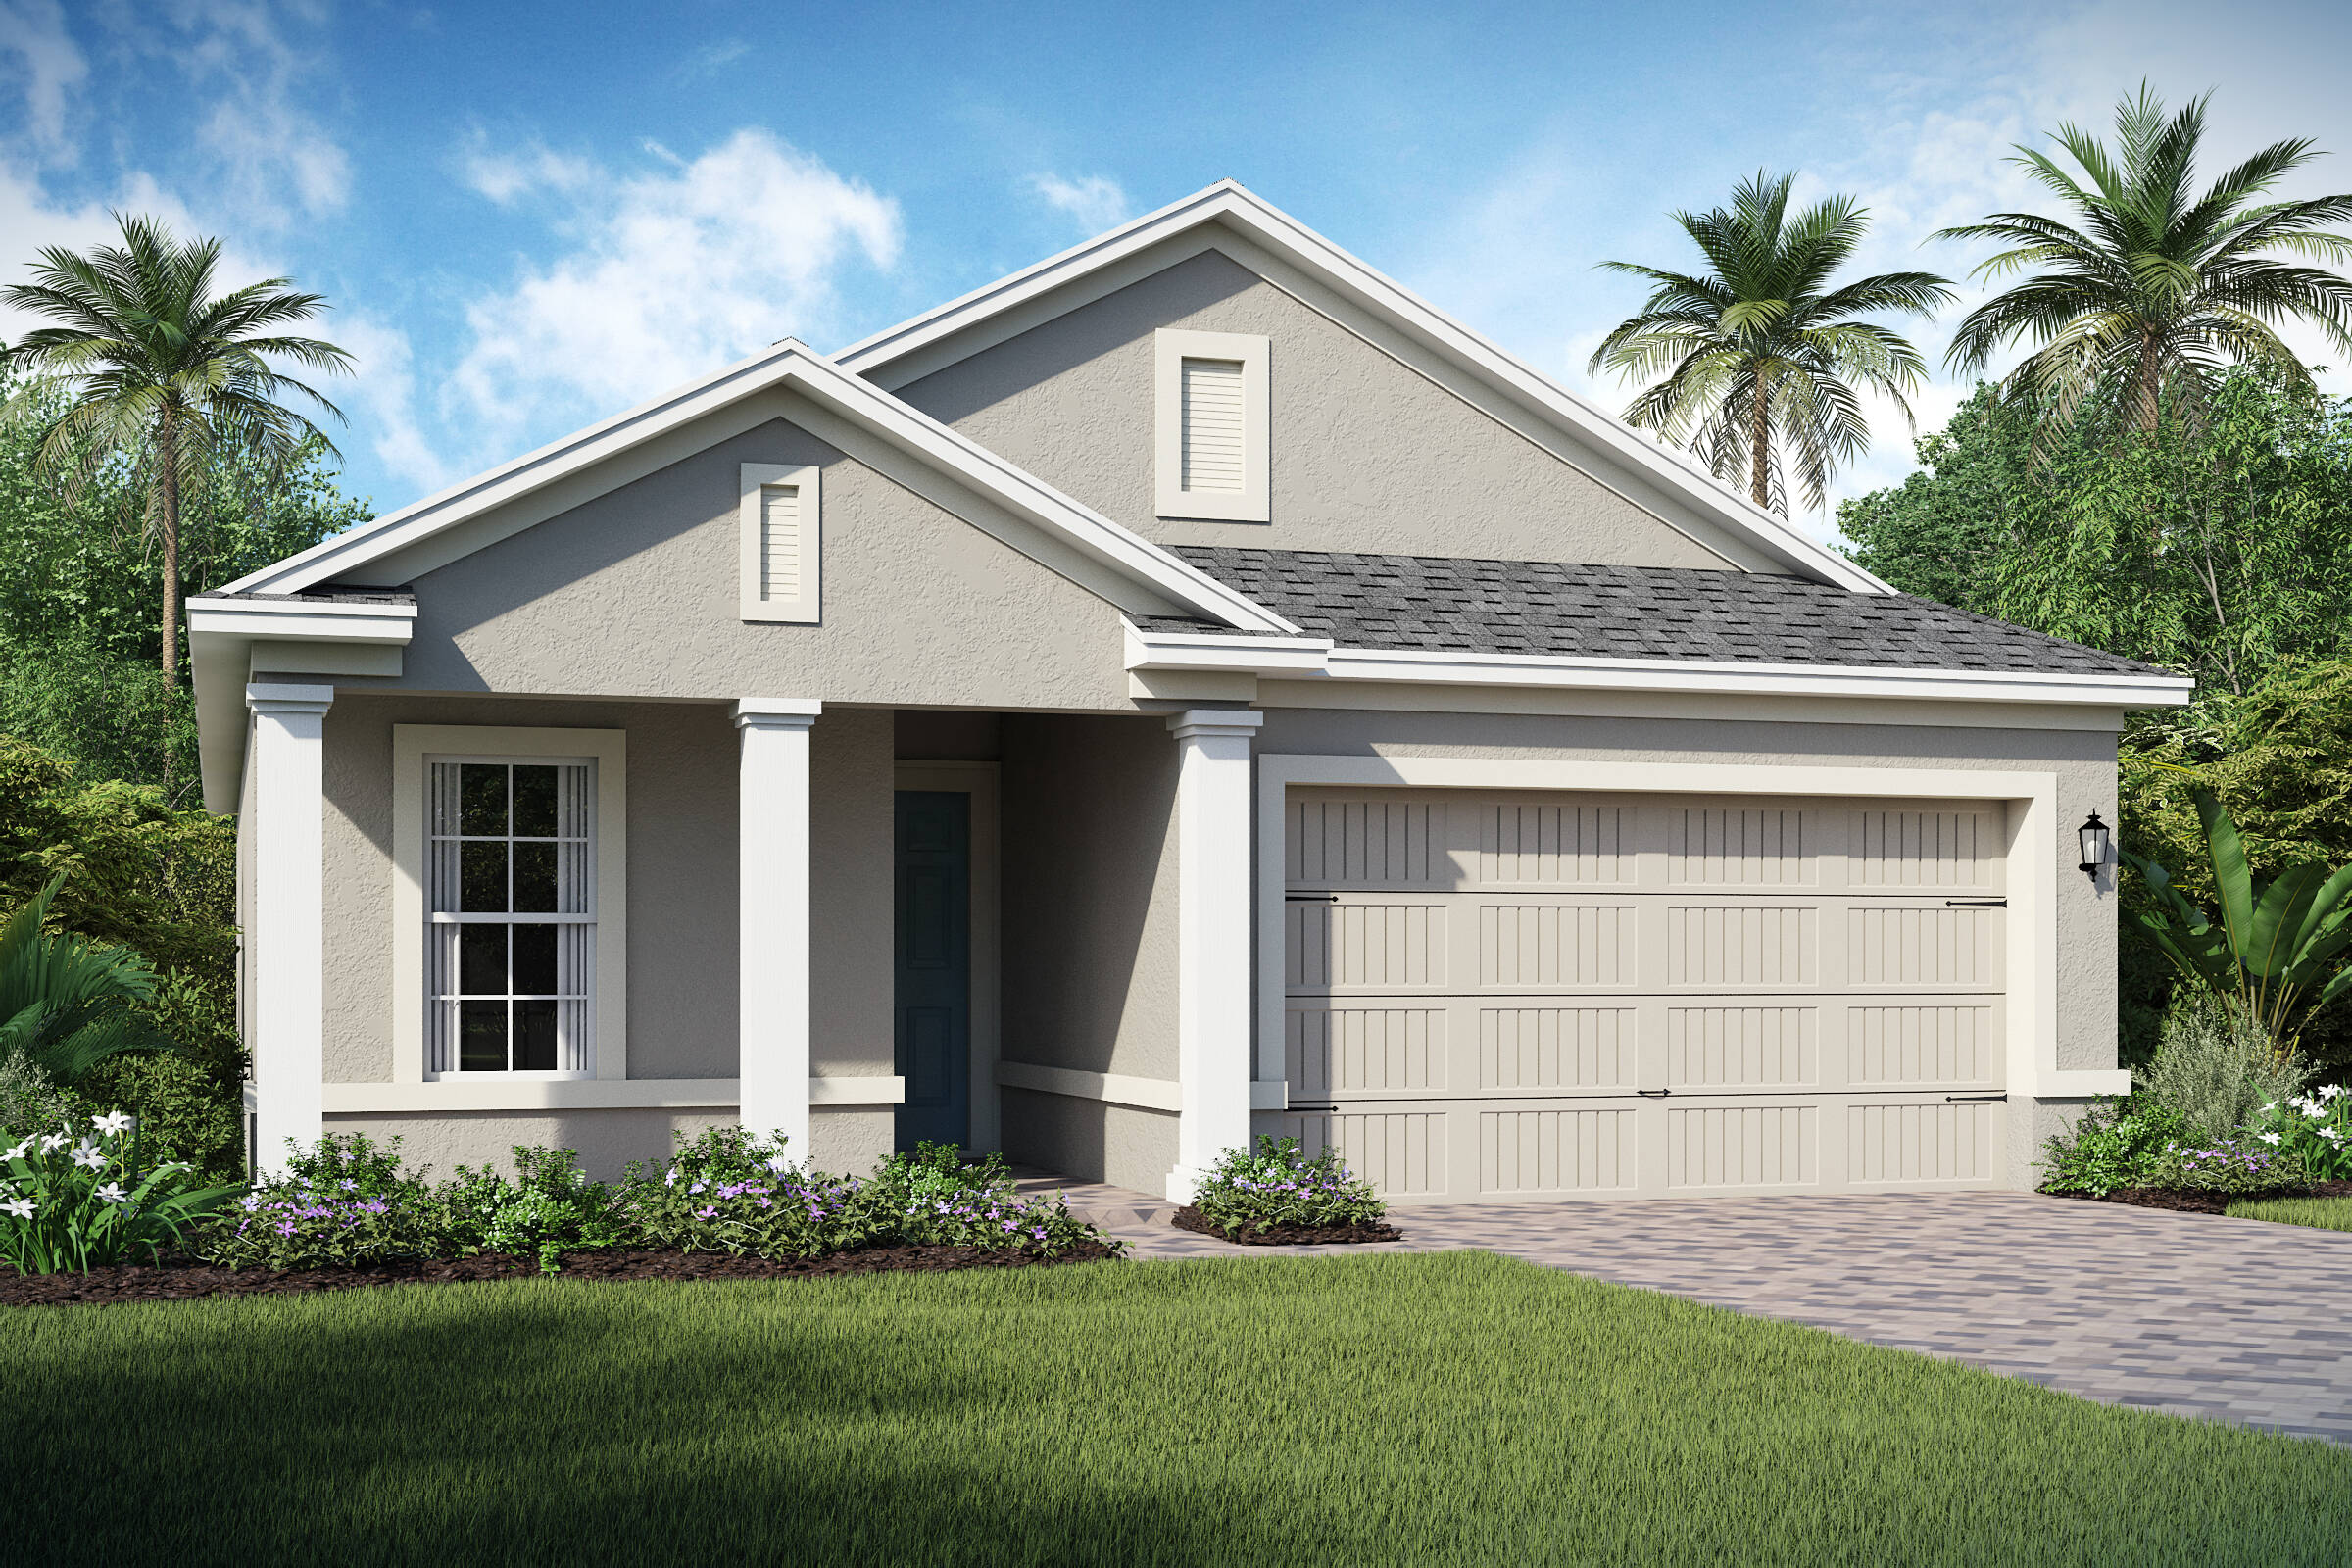 Balfour-C-elev new homes in orlando